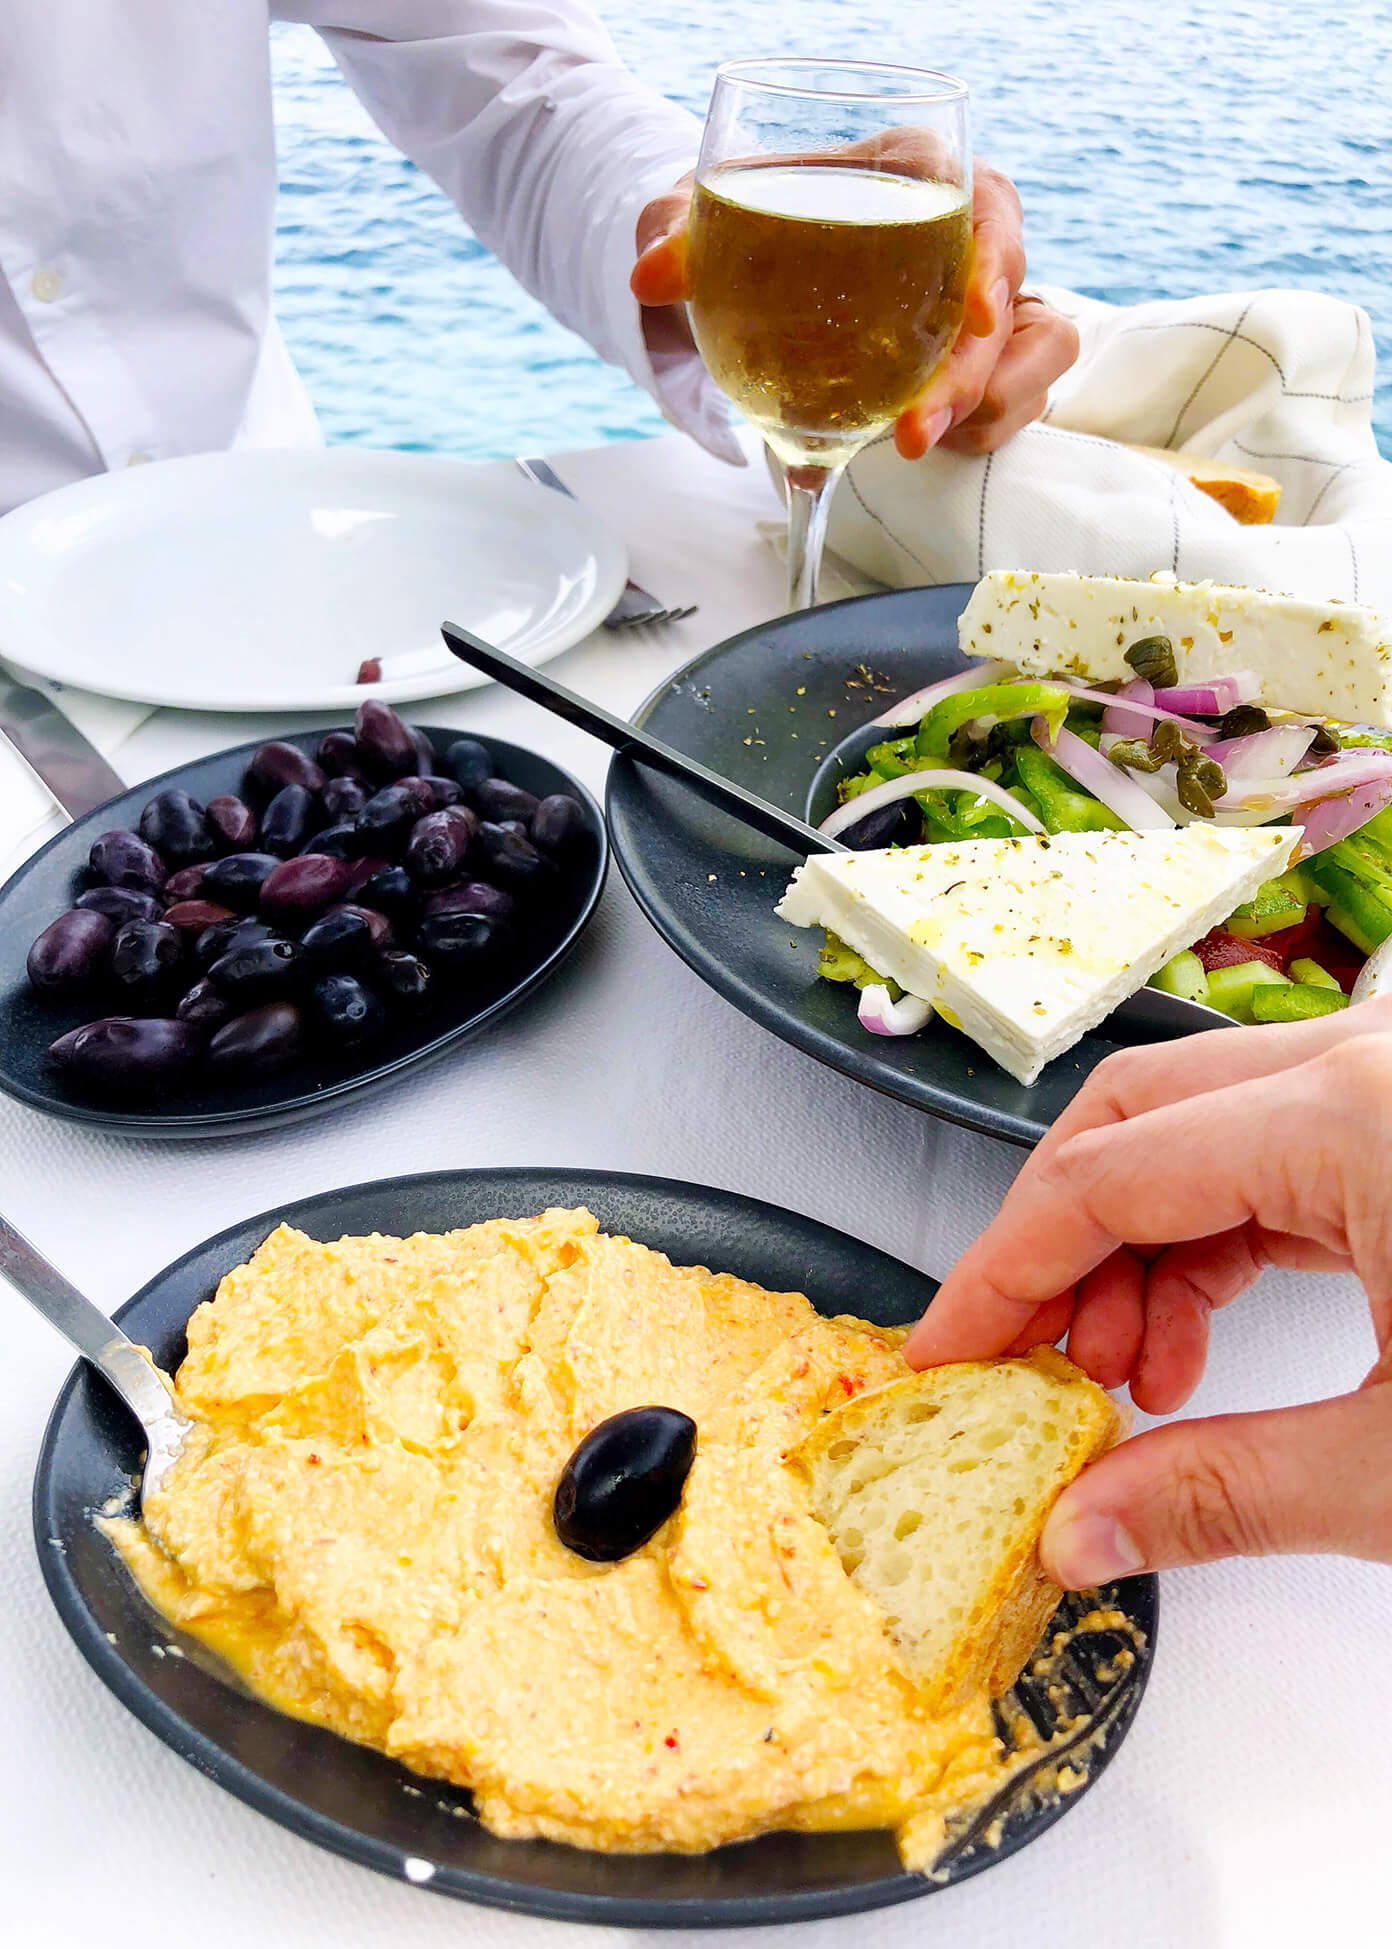 Spicy Cheese Dip, Olives and Greek Salad for Lunch at Sunset Taverna in Santorini, Greece